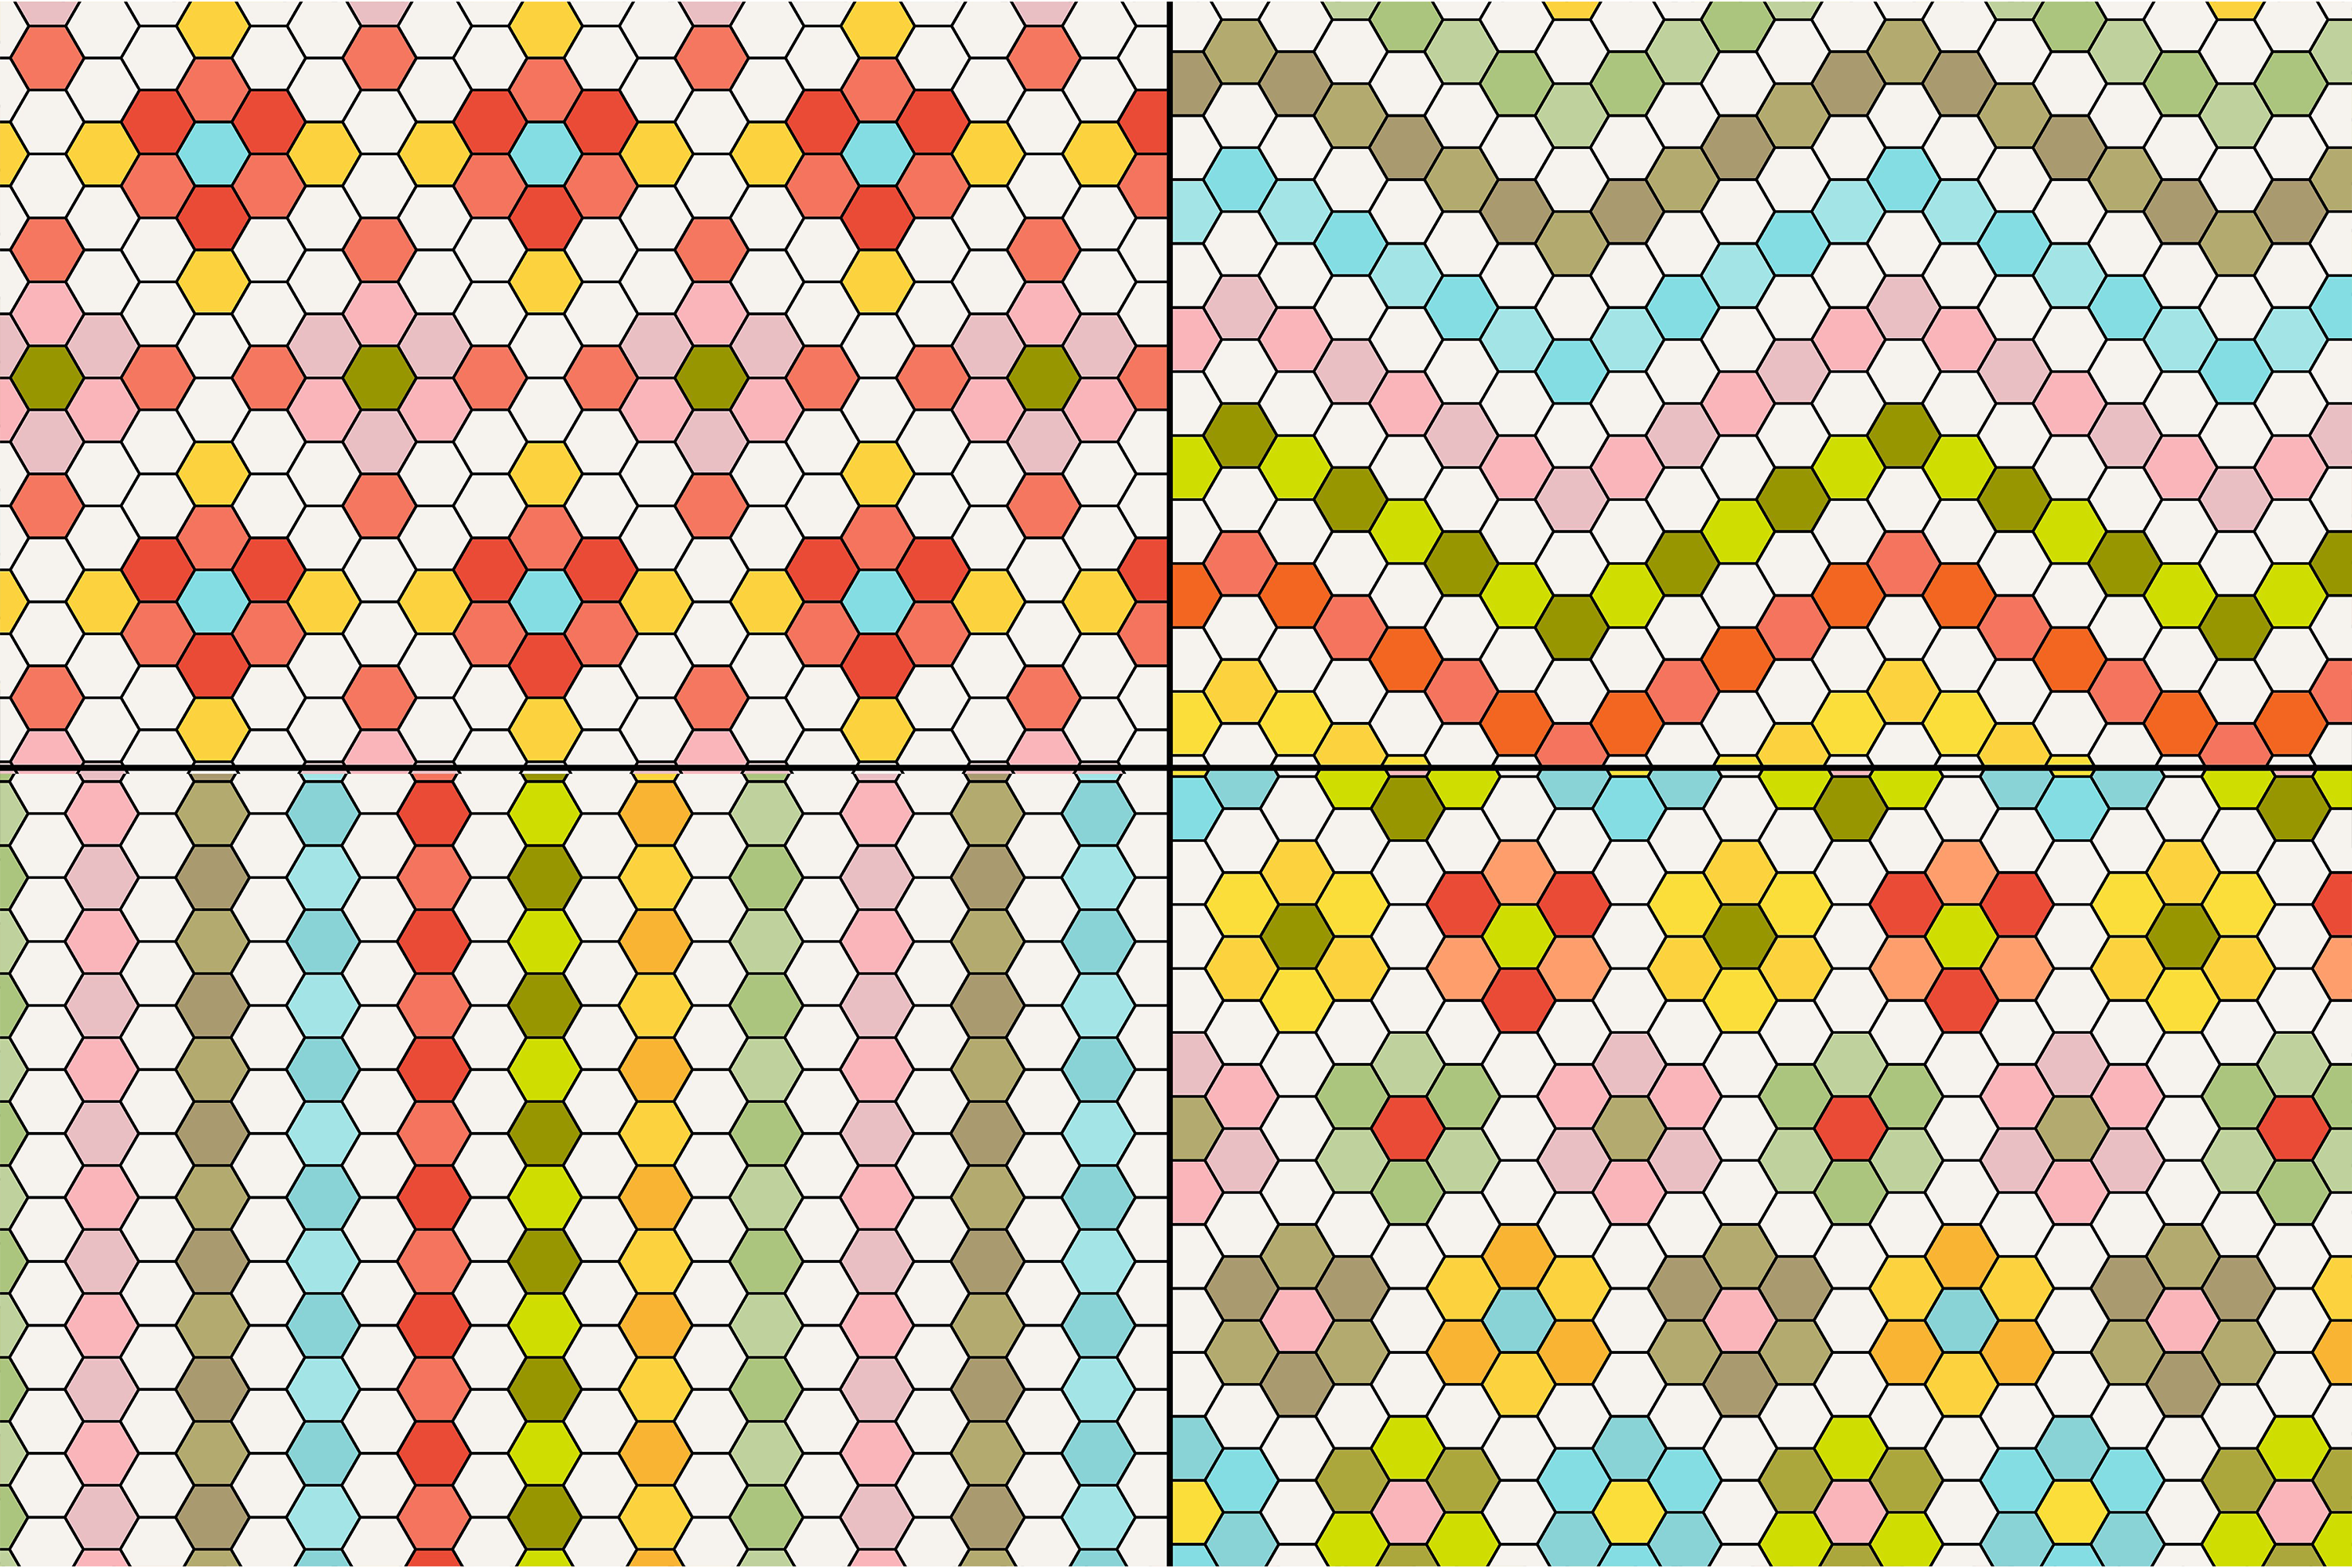 Hexagon Tile Patterns example image 5